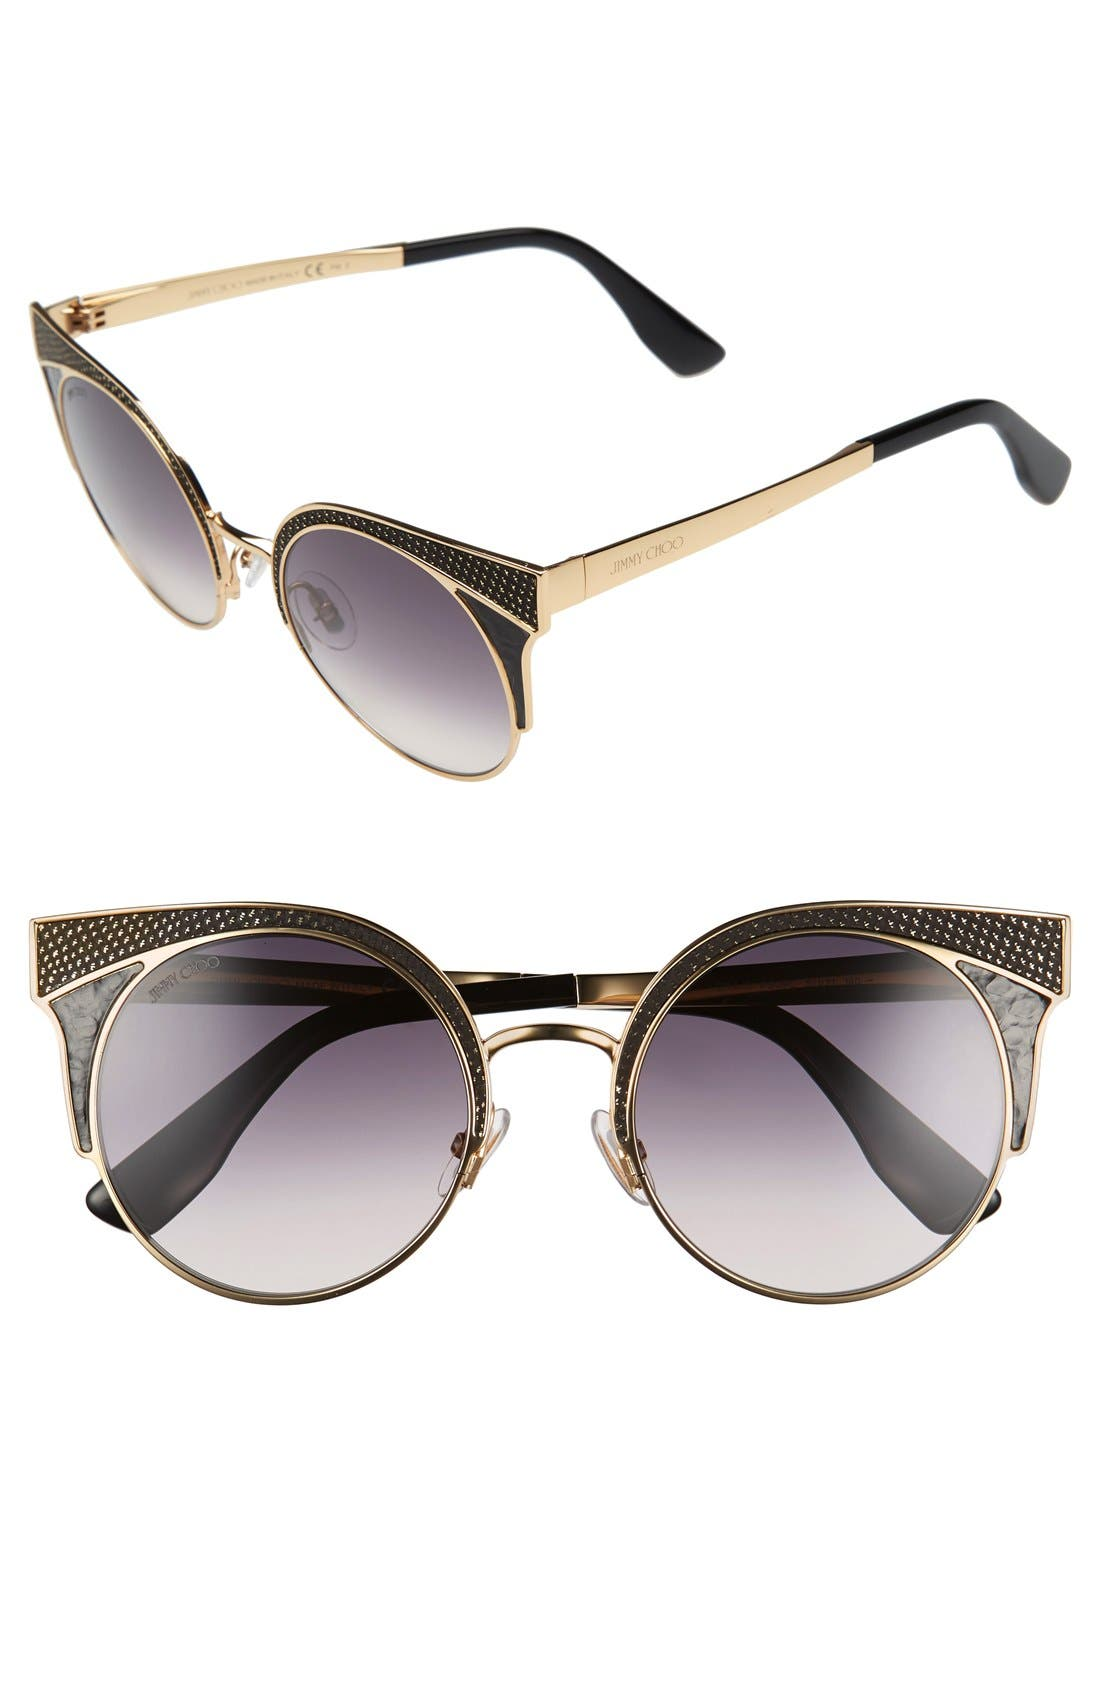 JIMMY CHOO,                             'Ora' 51mm Cat Eye Sunglasses,                             Main thumbnail 1, color,                             710